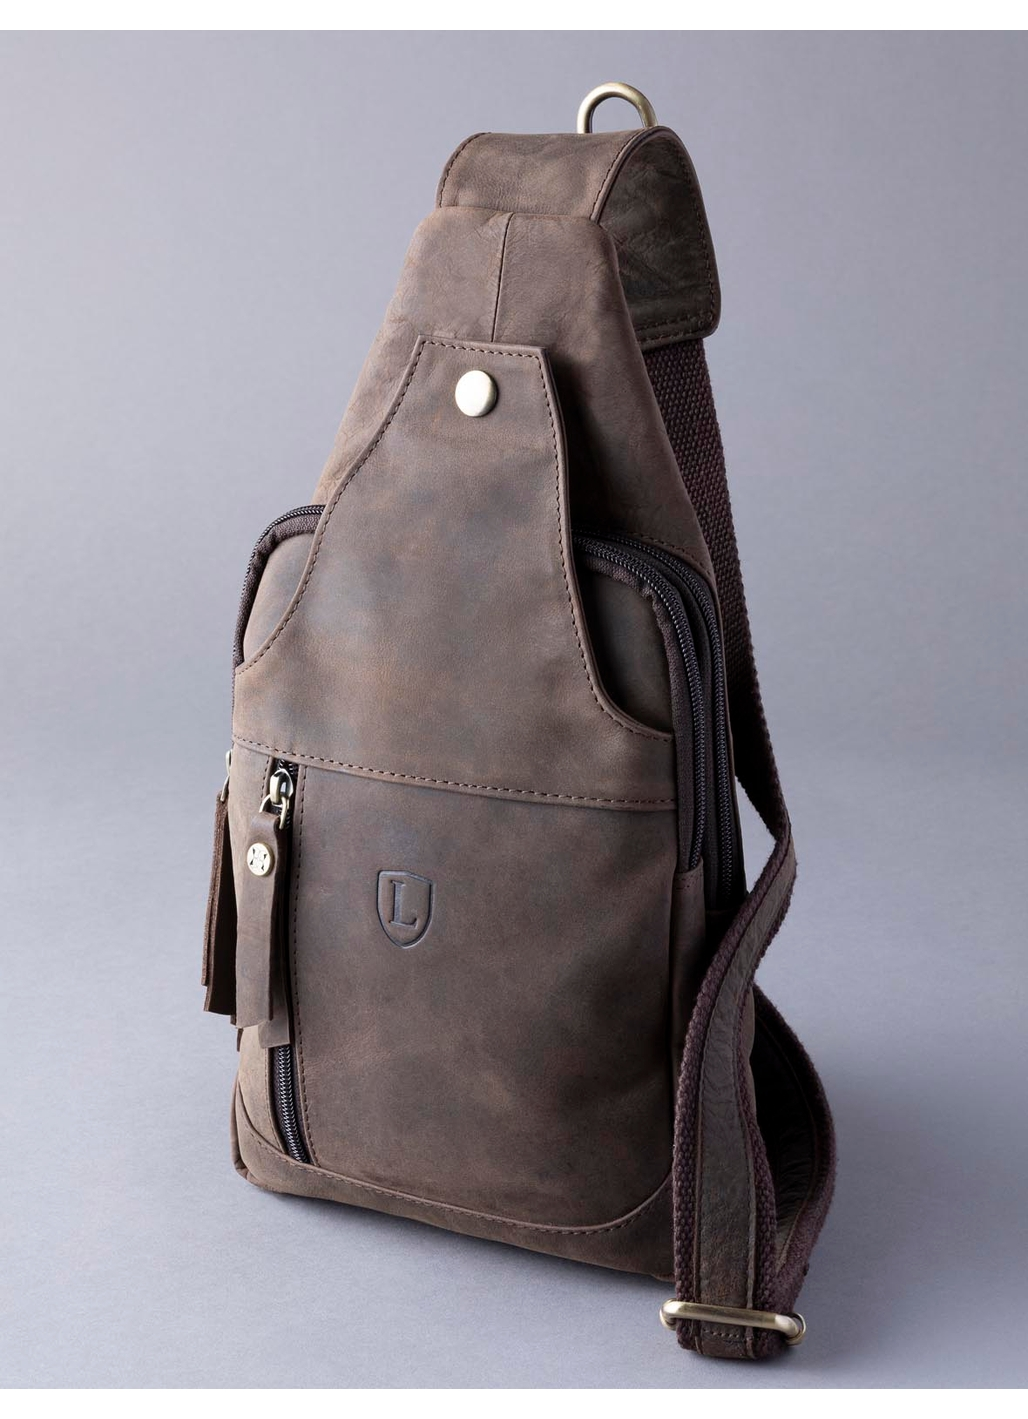 Hunter Leather Sling Bag in Chocolate Brown